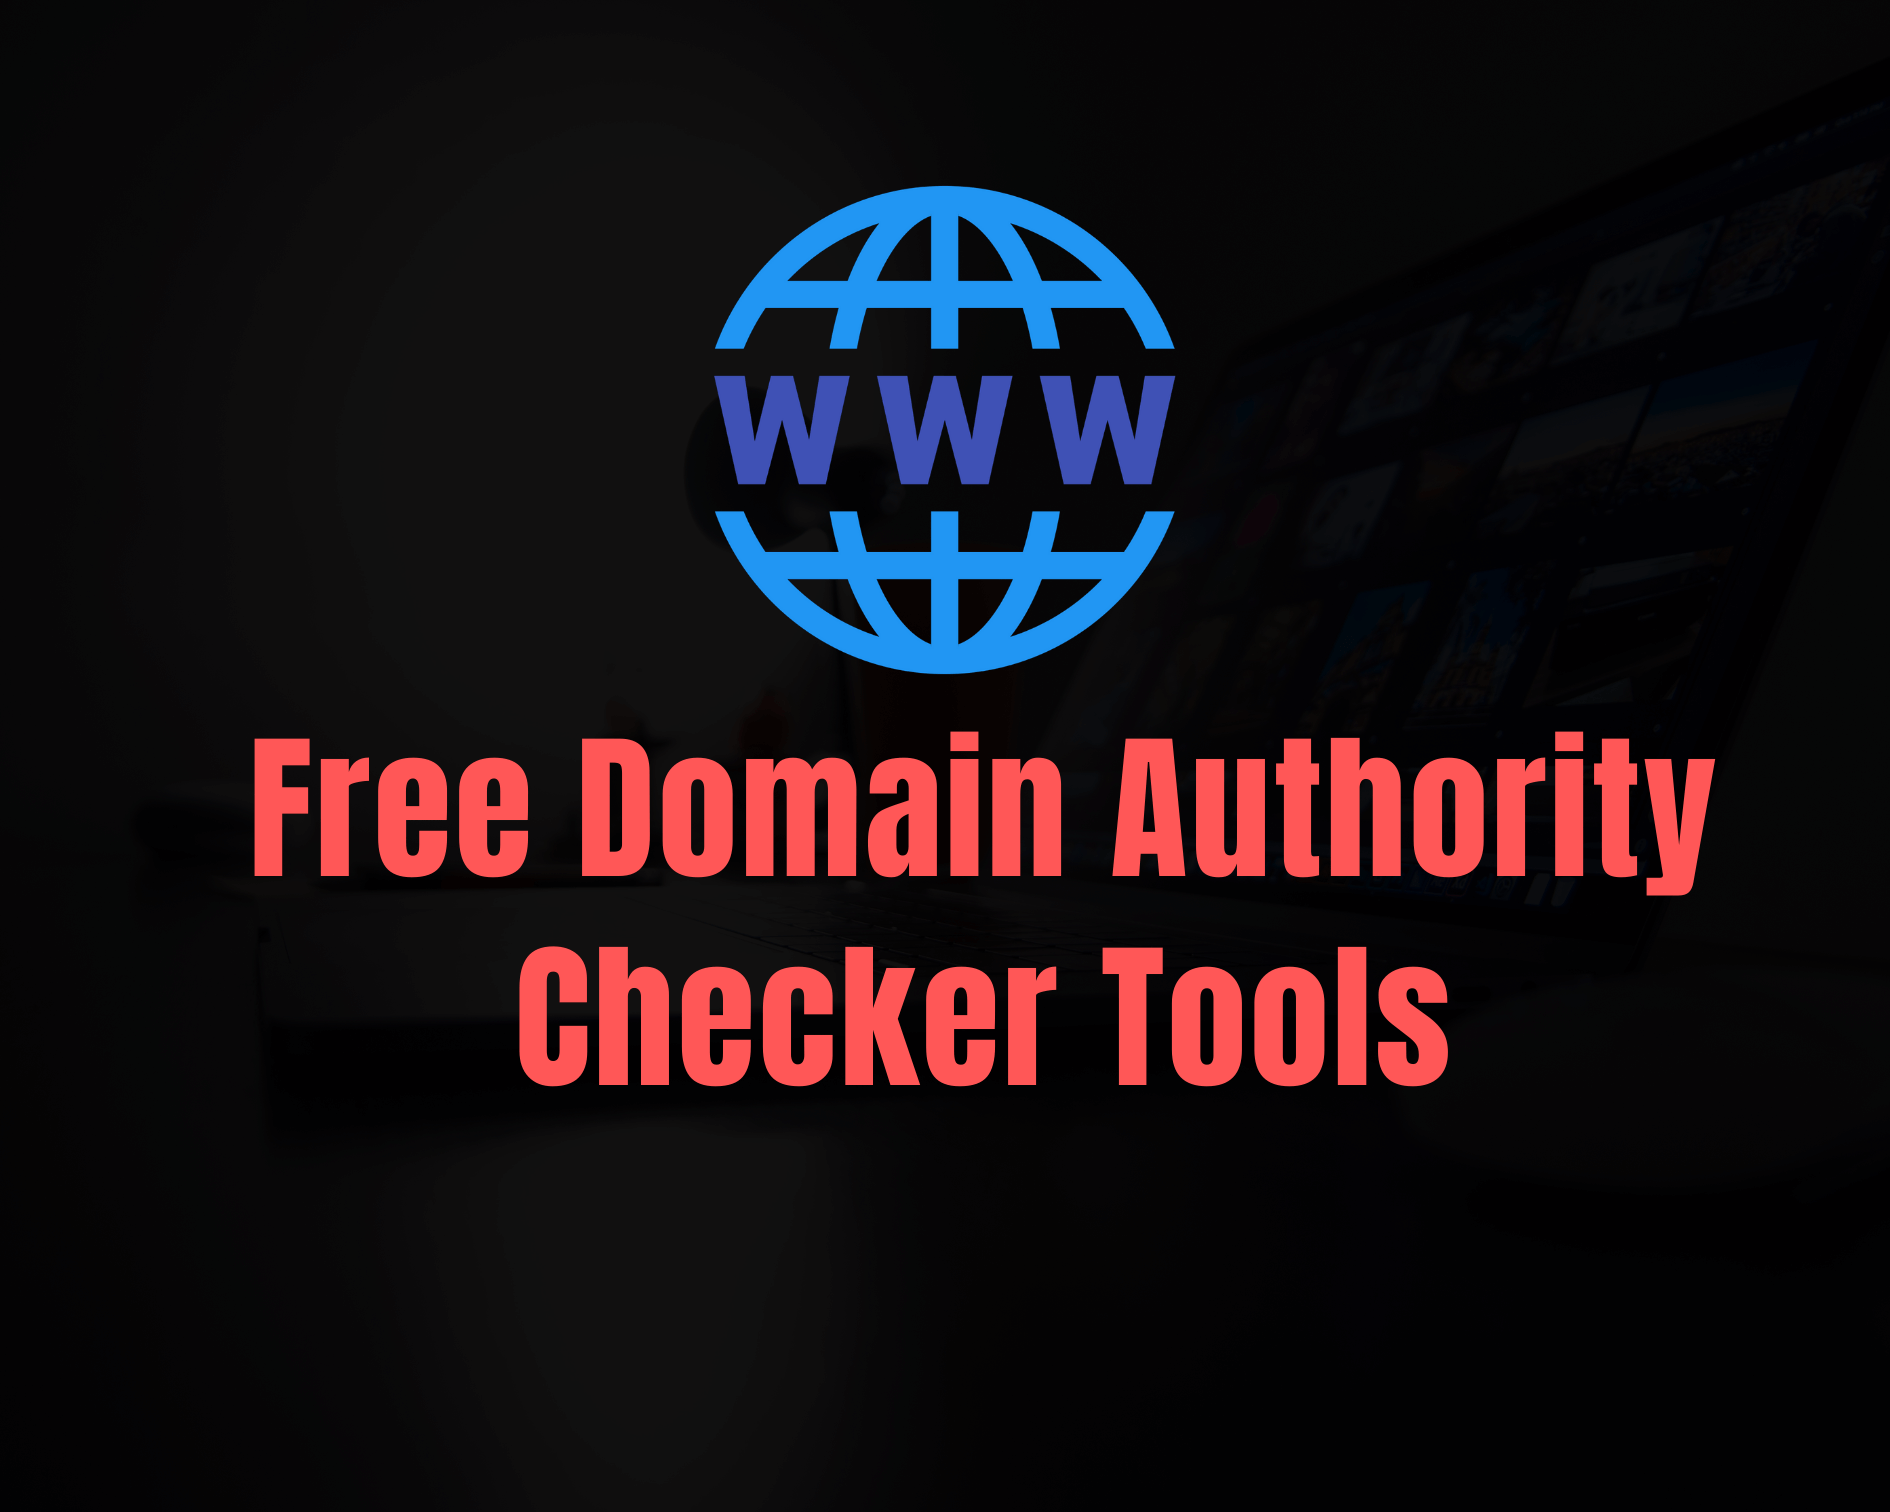 Top 3 Free Domain Authority Checker Tools in 2021